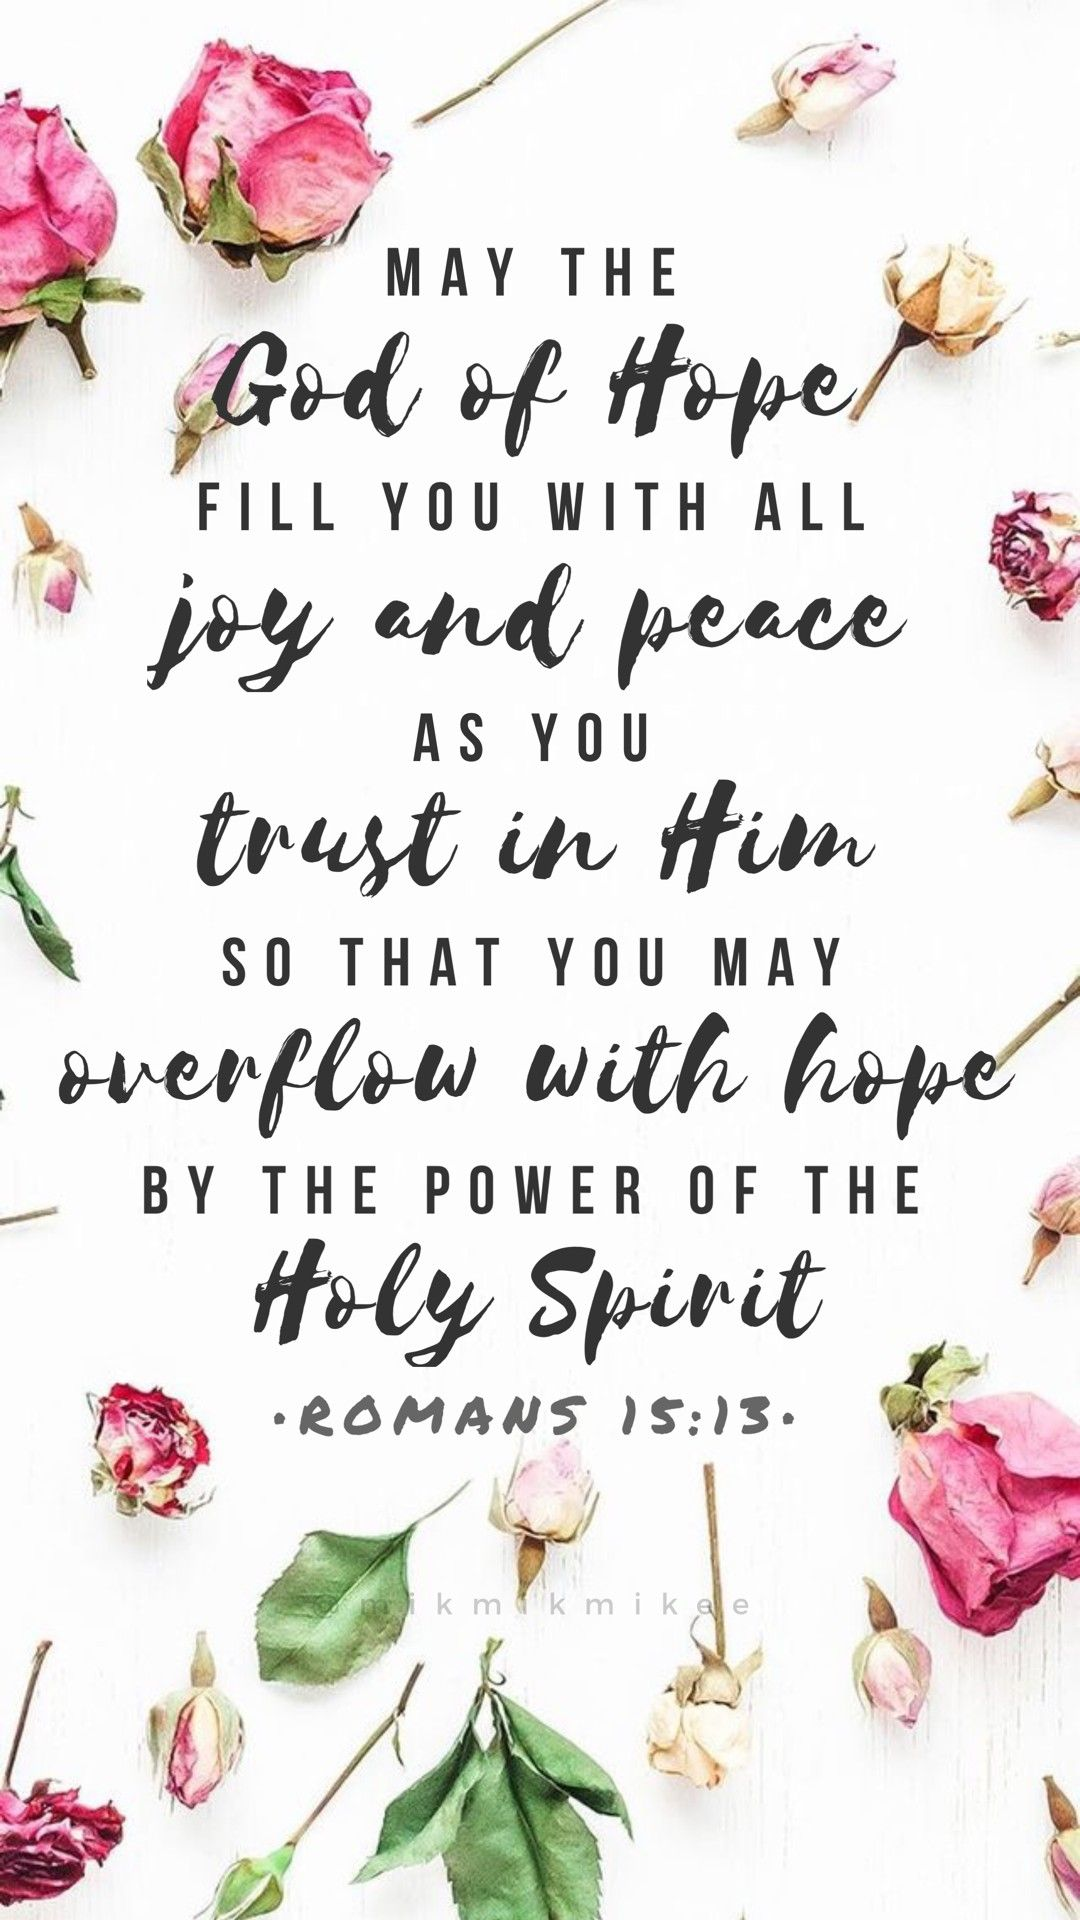 Romans 15 13 Wallpaper By Mikmikmikee Floral Bible Verse Bible Verse Wallpaper Wallpaper Bible